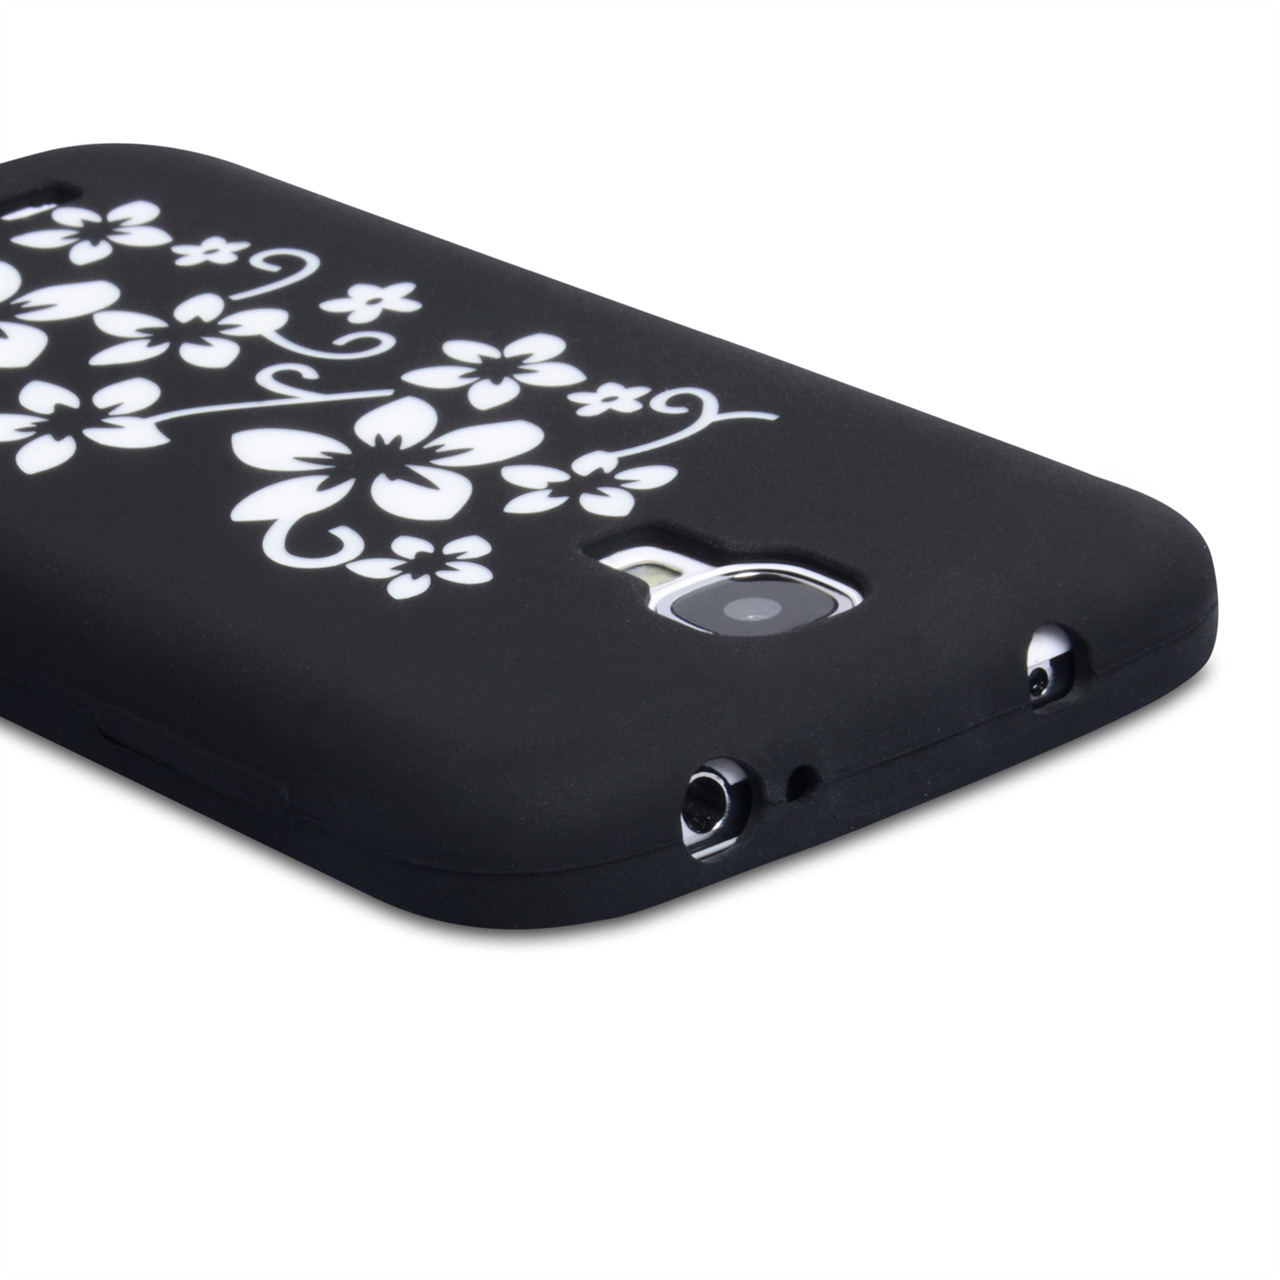 YouSave Accessories Samsung Galaxy S4 Floral Silicone Gel Case - Black